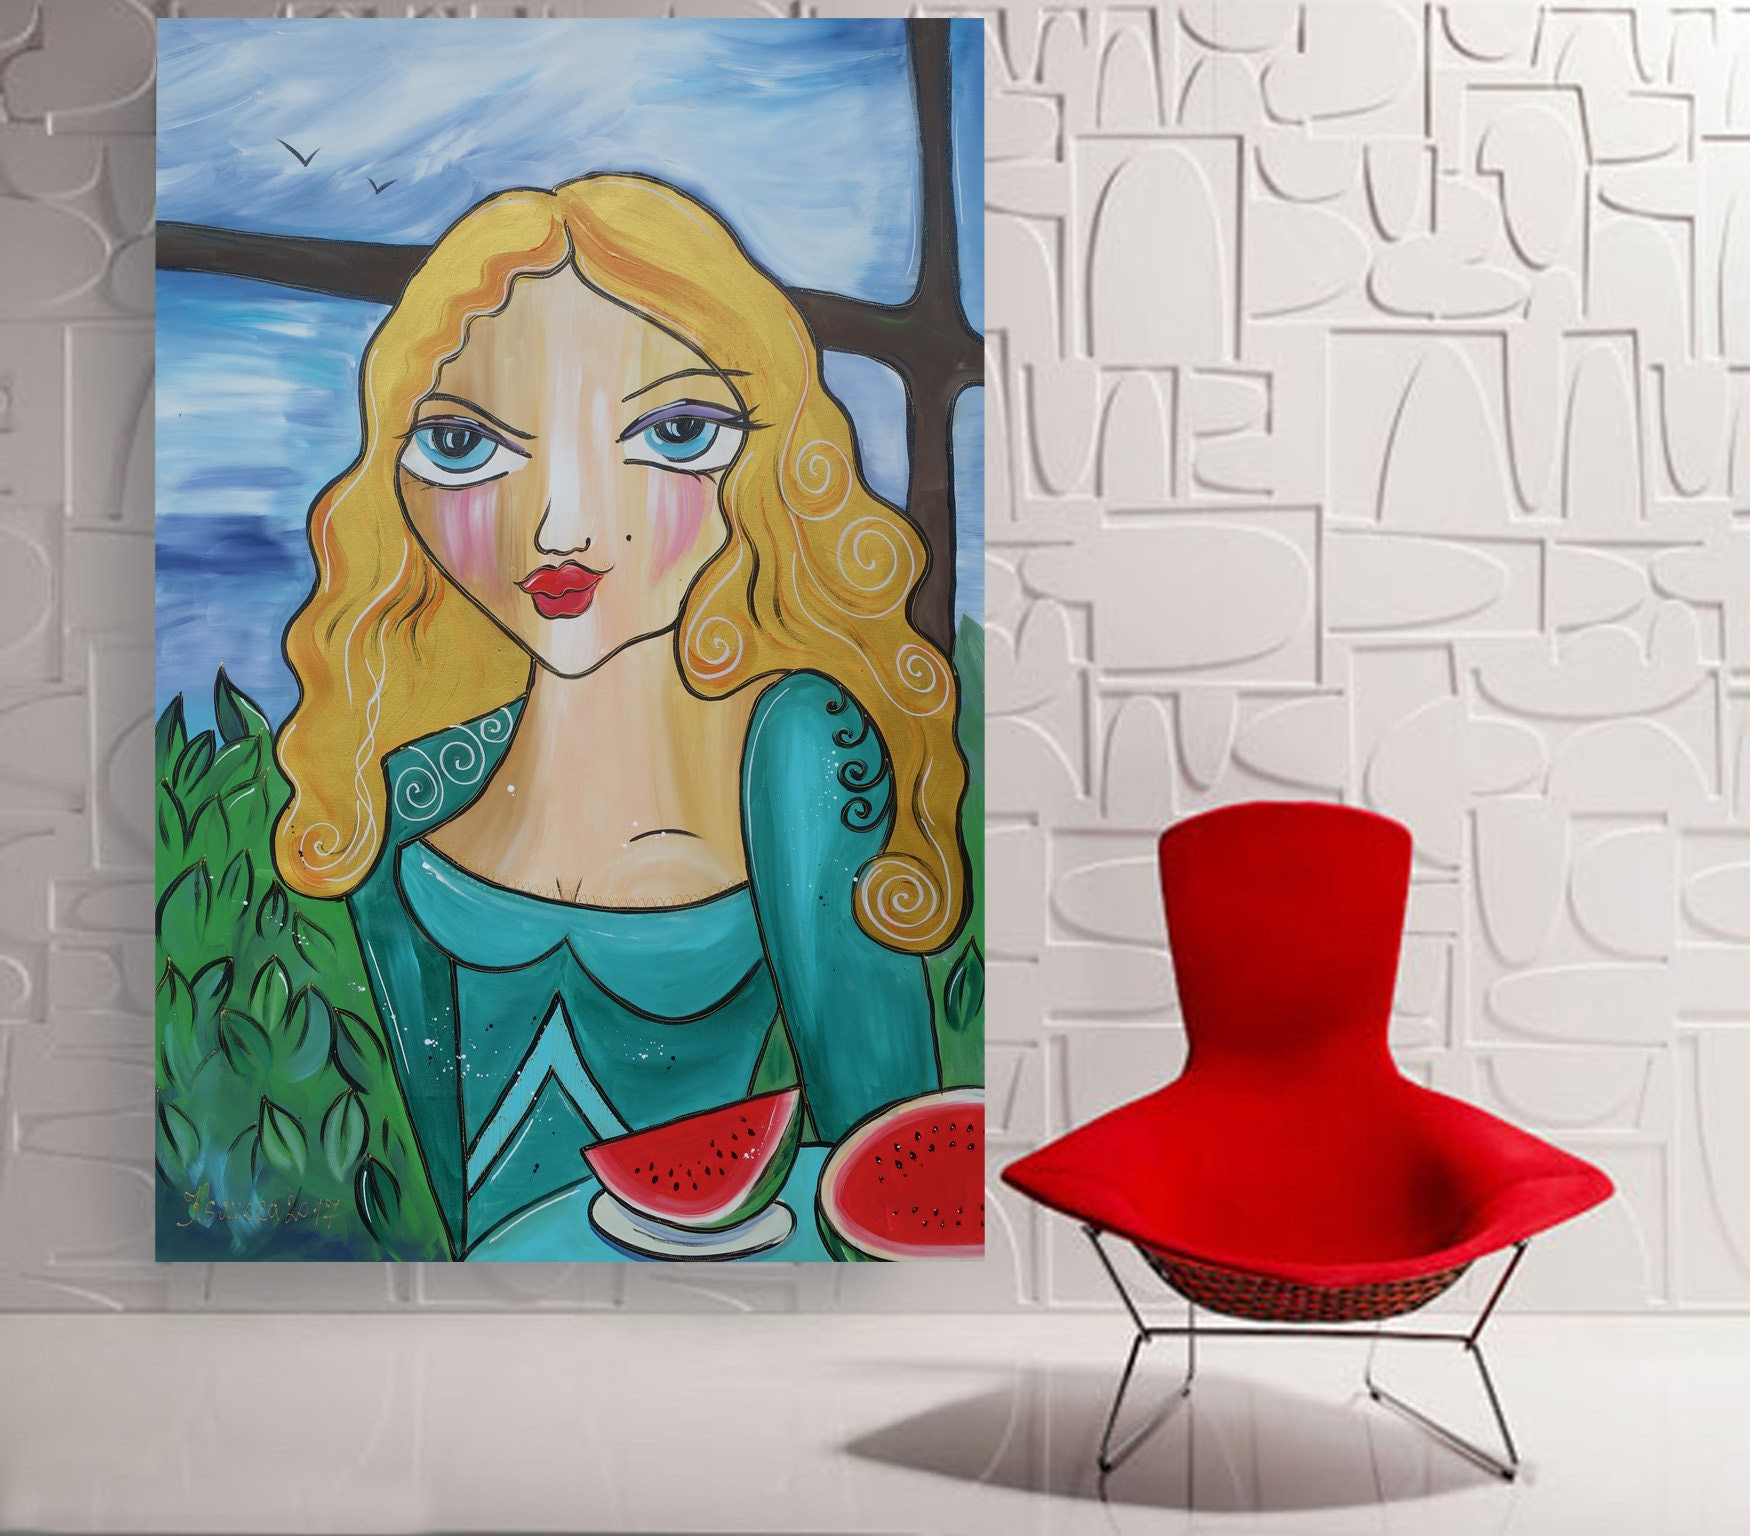 girl with a watermelon portrait large acrylic painting 110x160 cm unstretched canvas f144 art. Black Bedroom Furniture Sets. Home Design Ideas